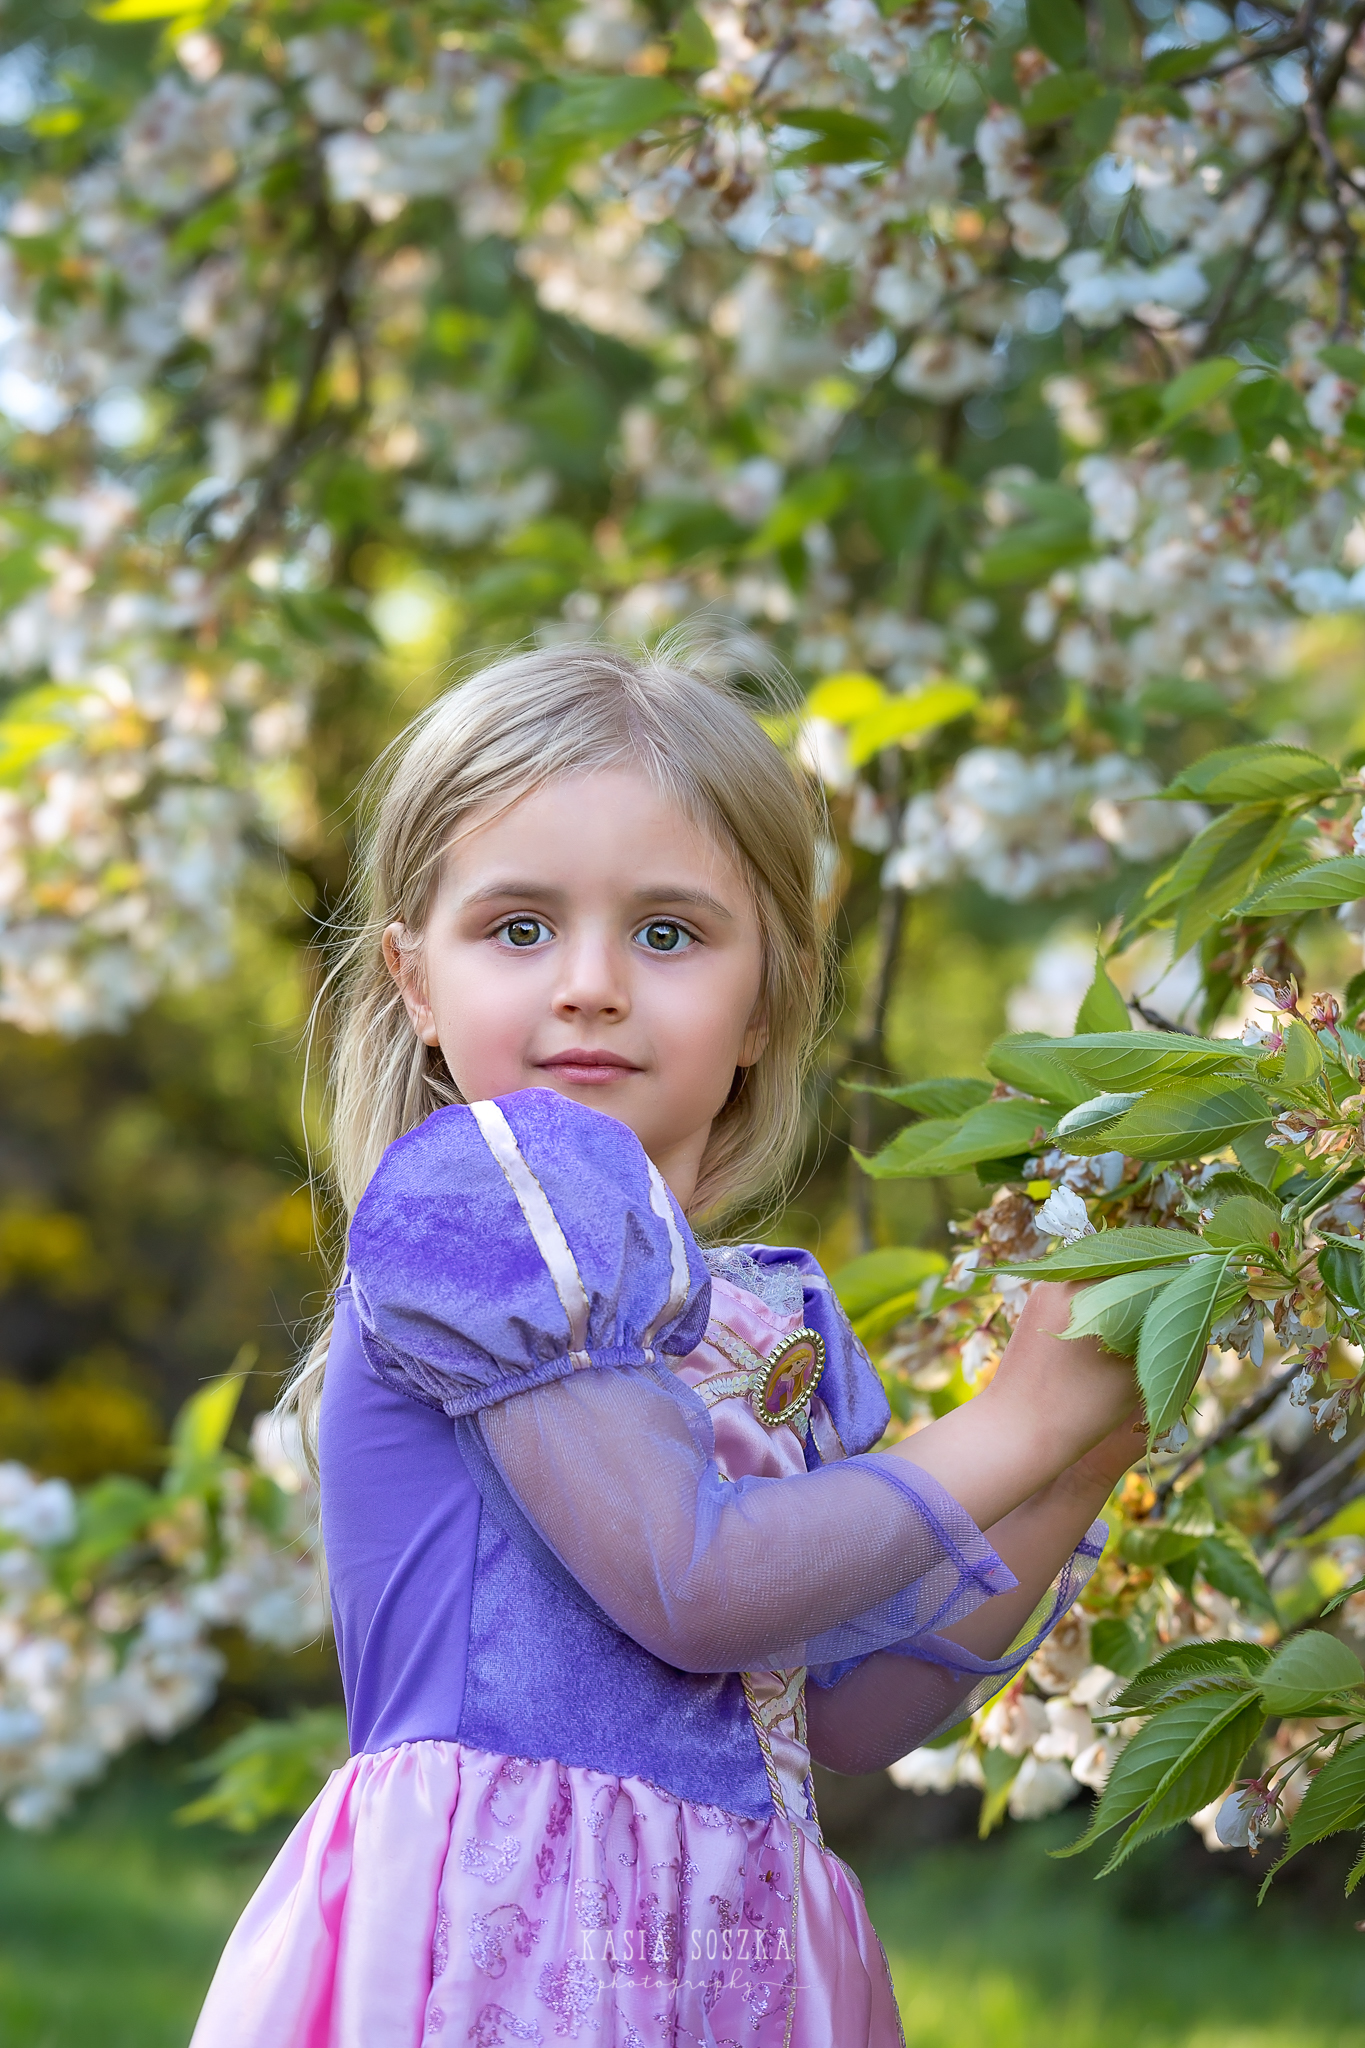 Leeds child photography Bradford child session York children photography: pretty little blond girl in a princess dress with apple blossoms